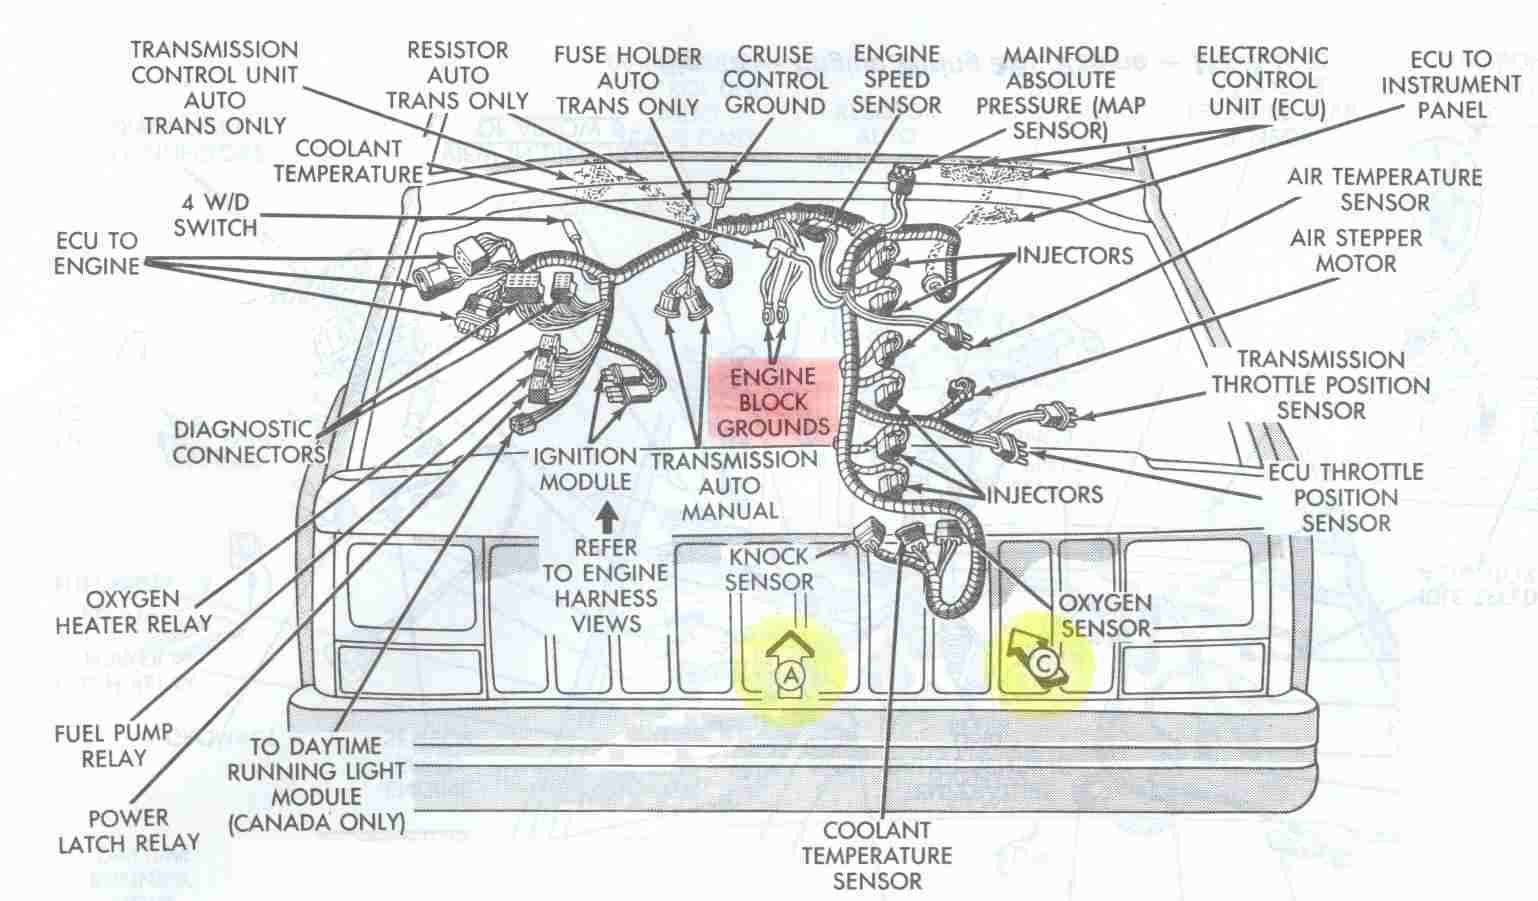 ab0134a7d9e021431187af597eb4aeca engine bay schematic showing major electrical ground points for 1990 jeep cherokee ignition wiring diagram at gsmx.co